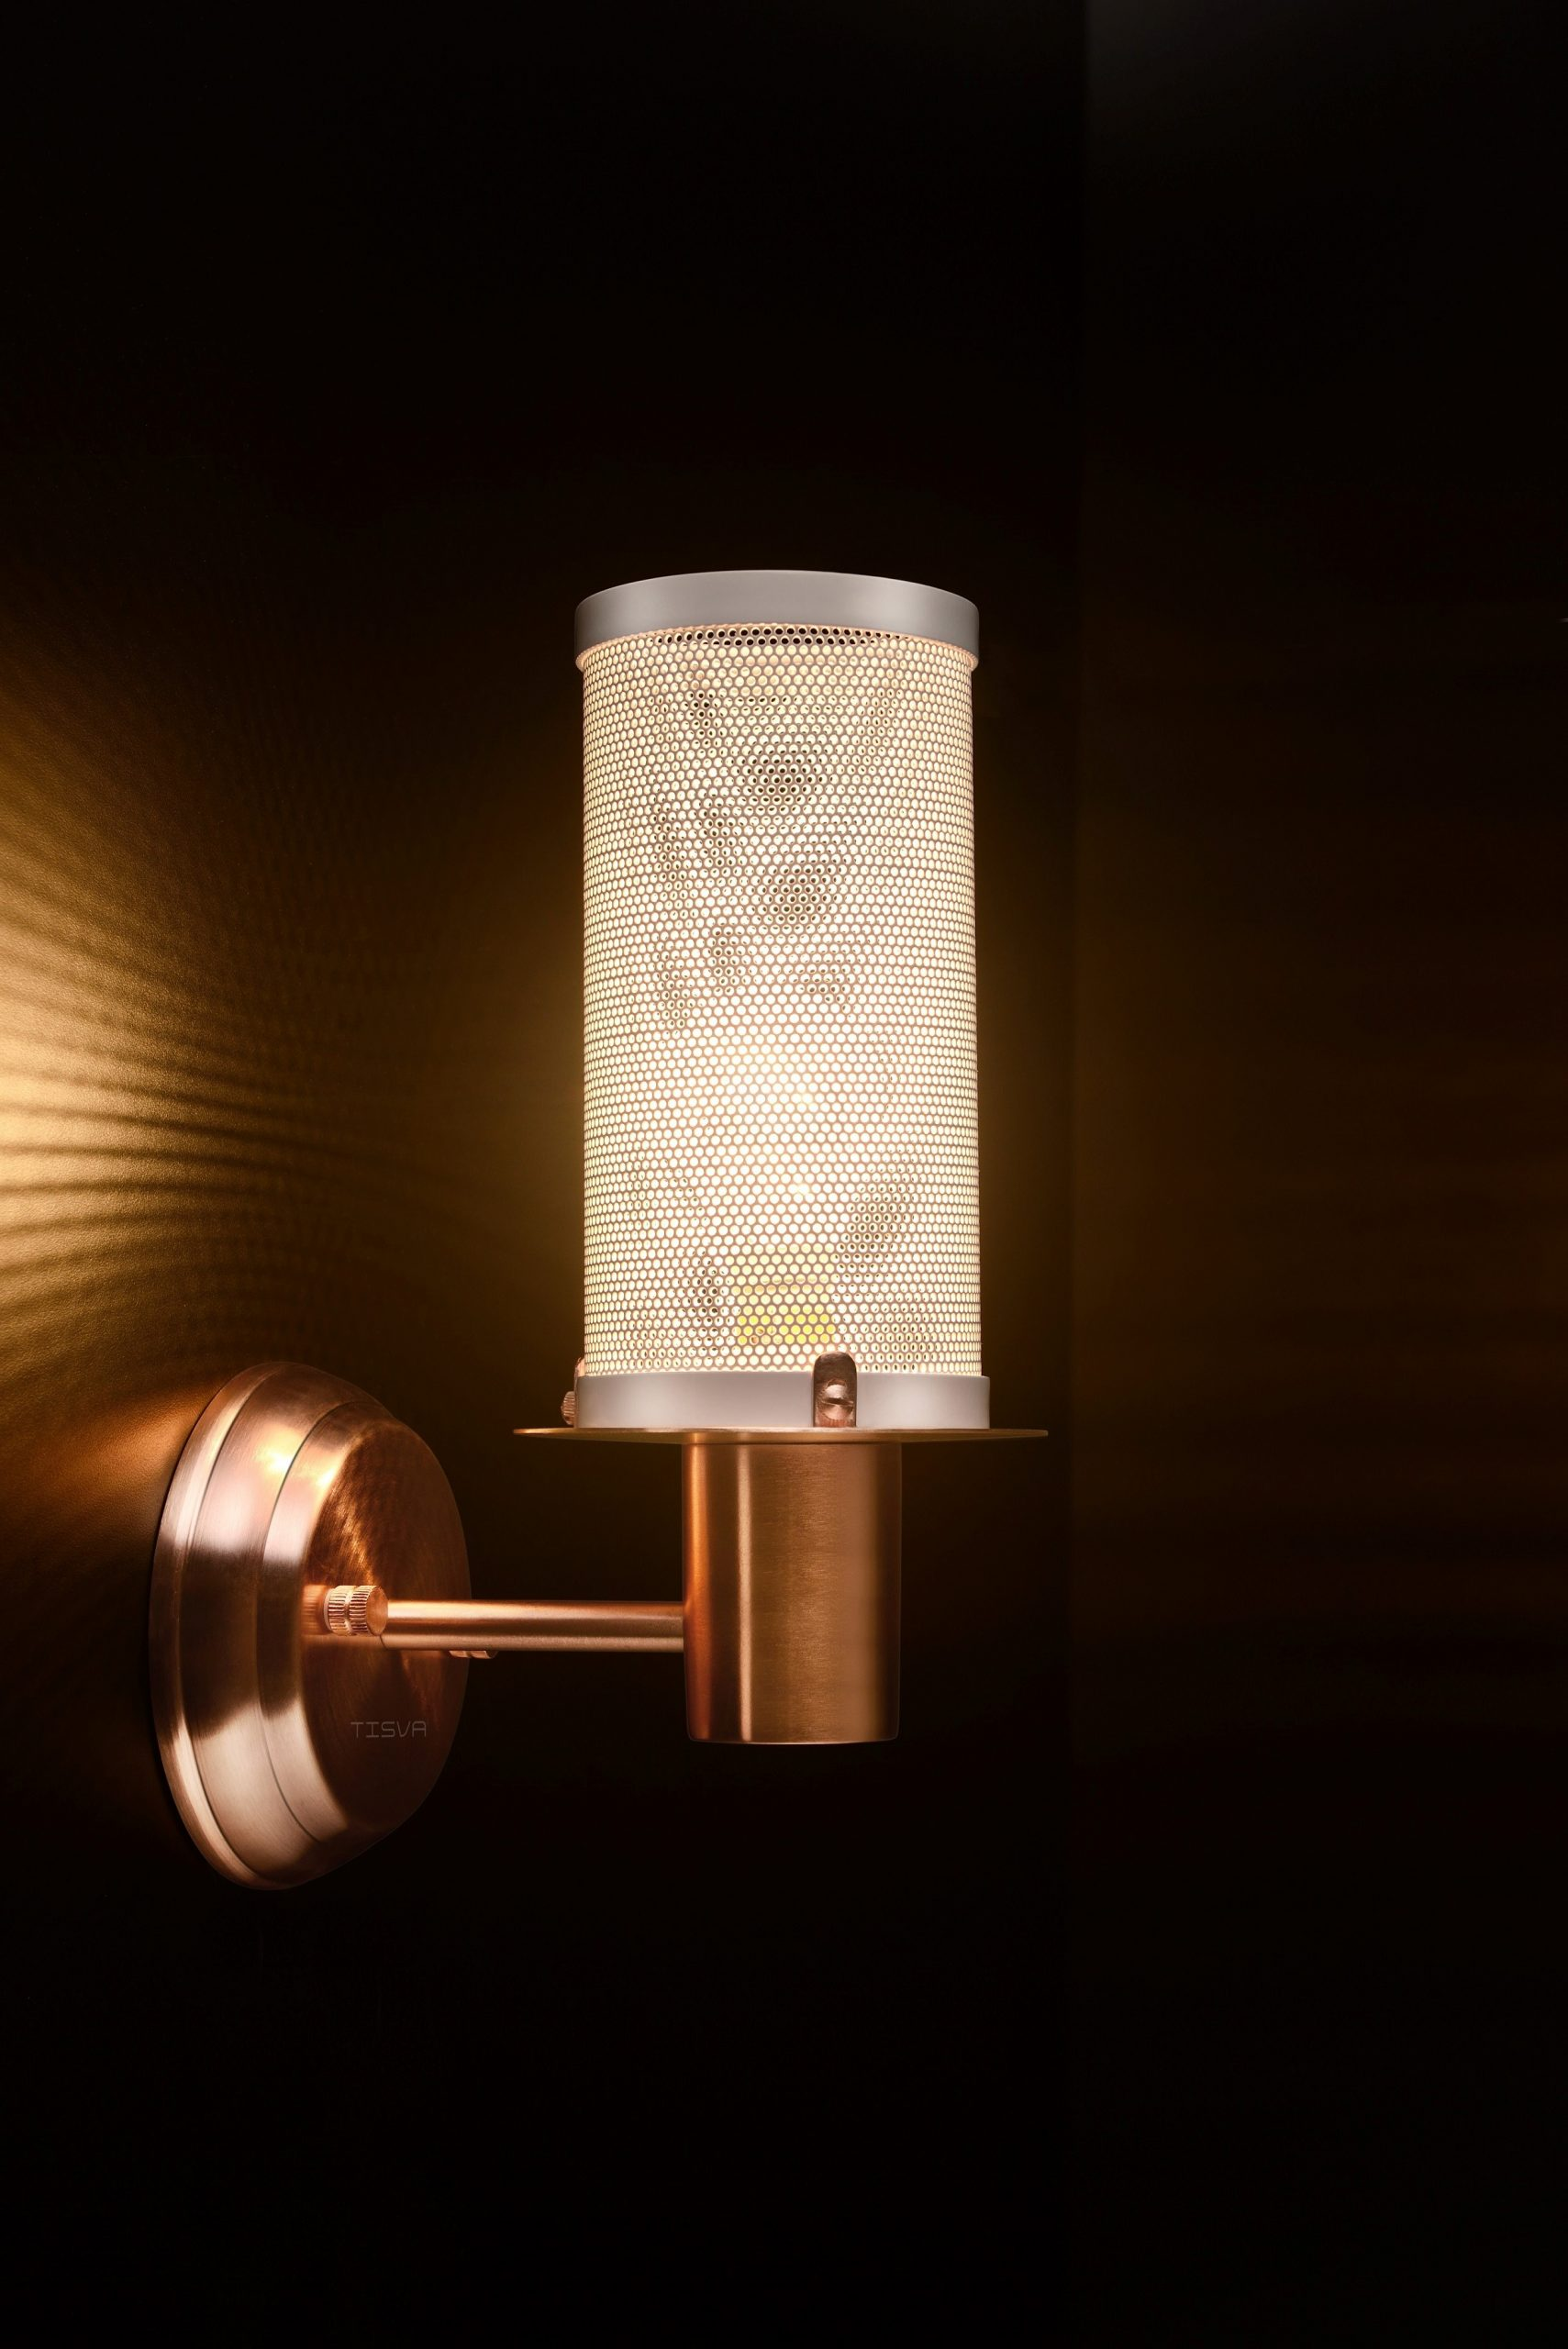 Tisva launches decorative Summer Collection of Bespoke Luminaires